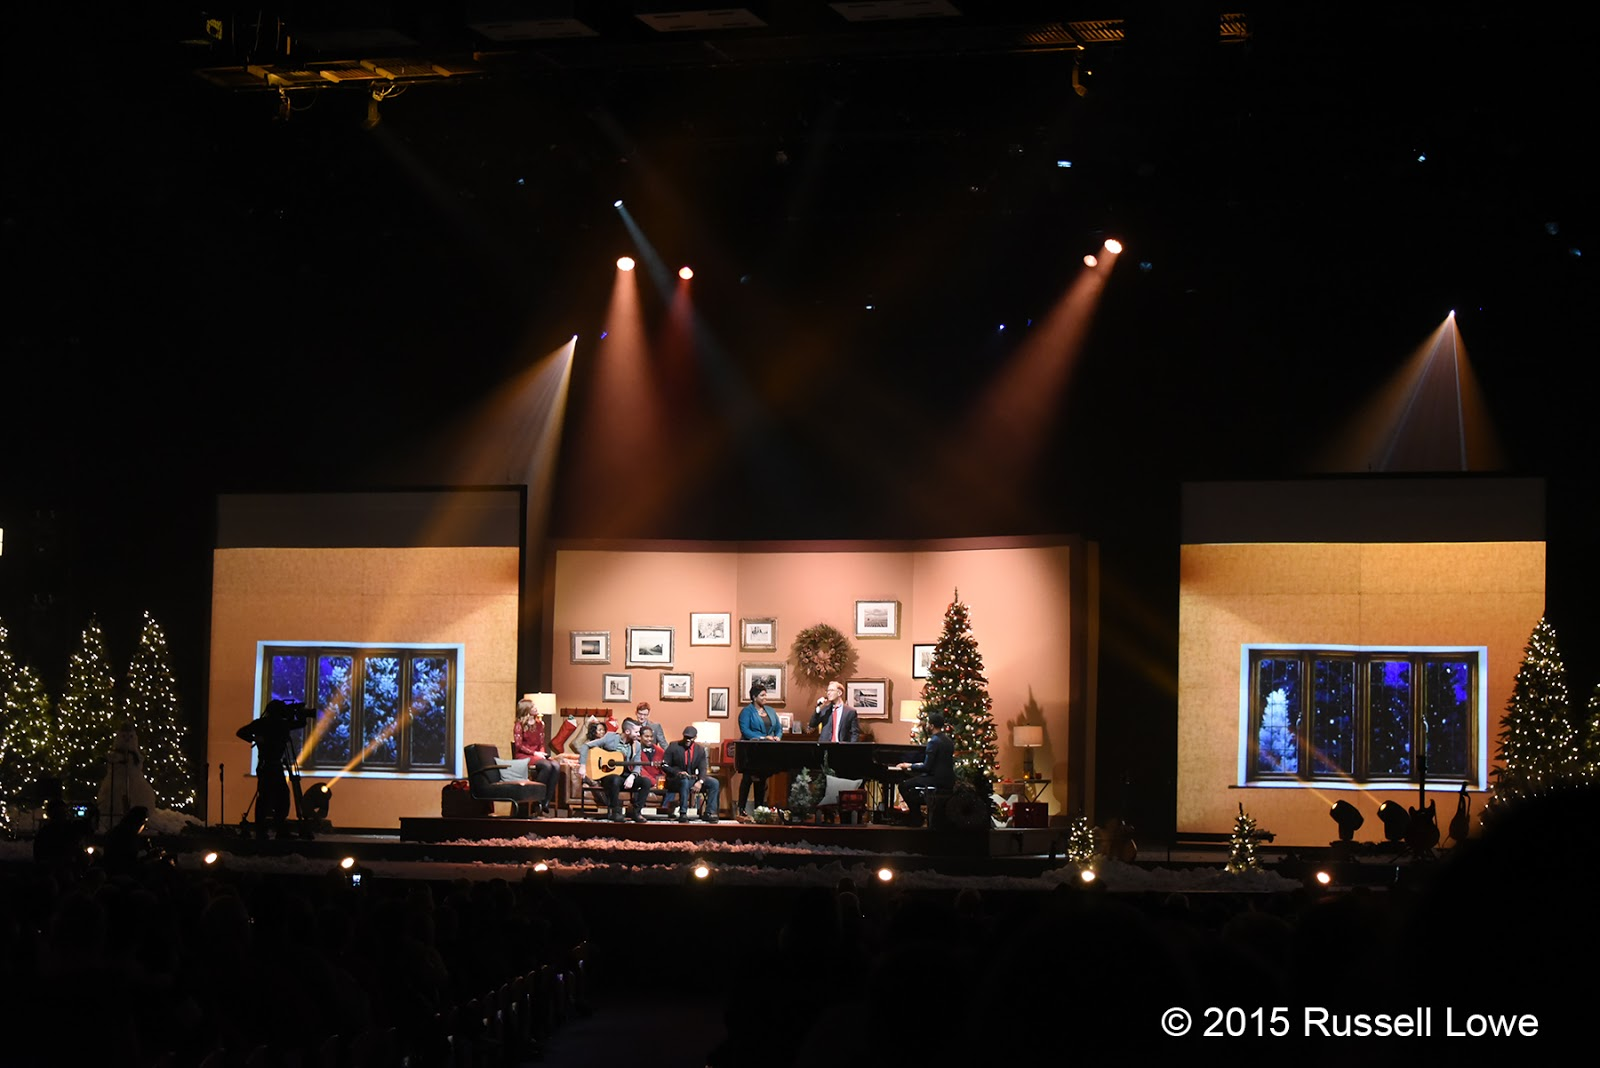 willow creek community church christmas eve 2015 - Christmas At Willow Creek